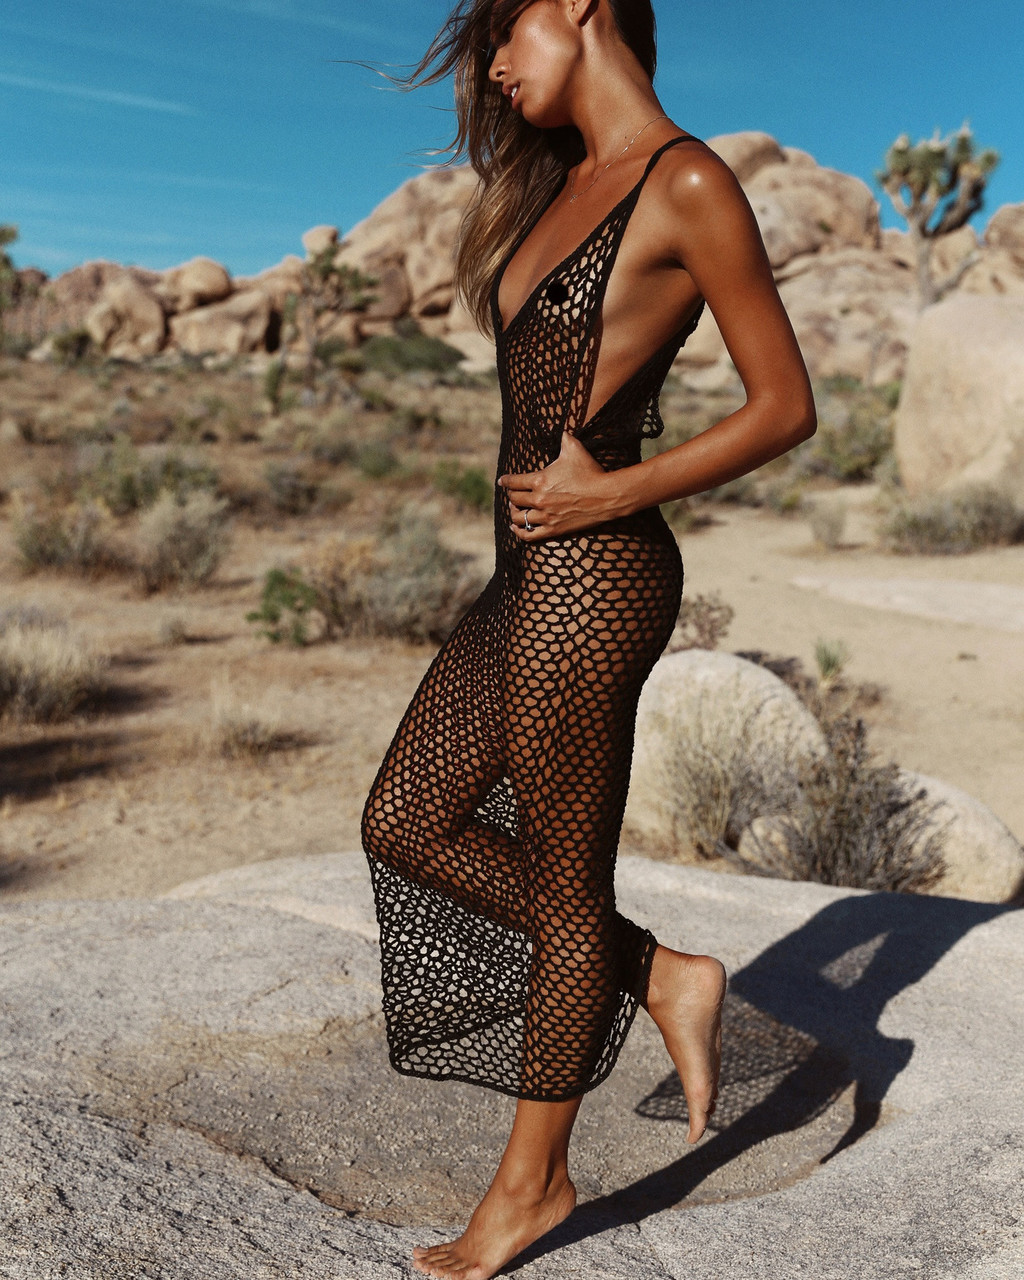 98cf96dcd2166 Crochet-Long-dress-vestido-ganchillo-Women-beach-bikini-cover-ups-Sexy -Mesh-Swimsuit-Bathing-Suit-Pareo__53069.1524984859.jpg?c=2&imbypass=on